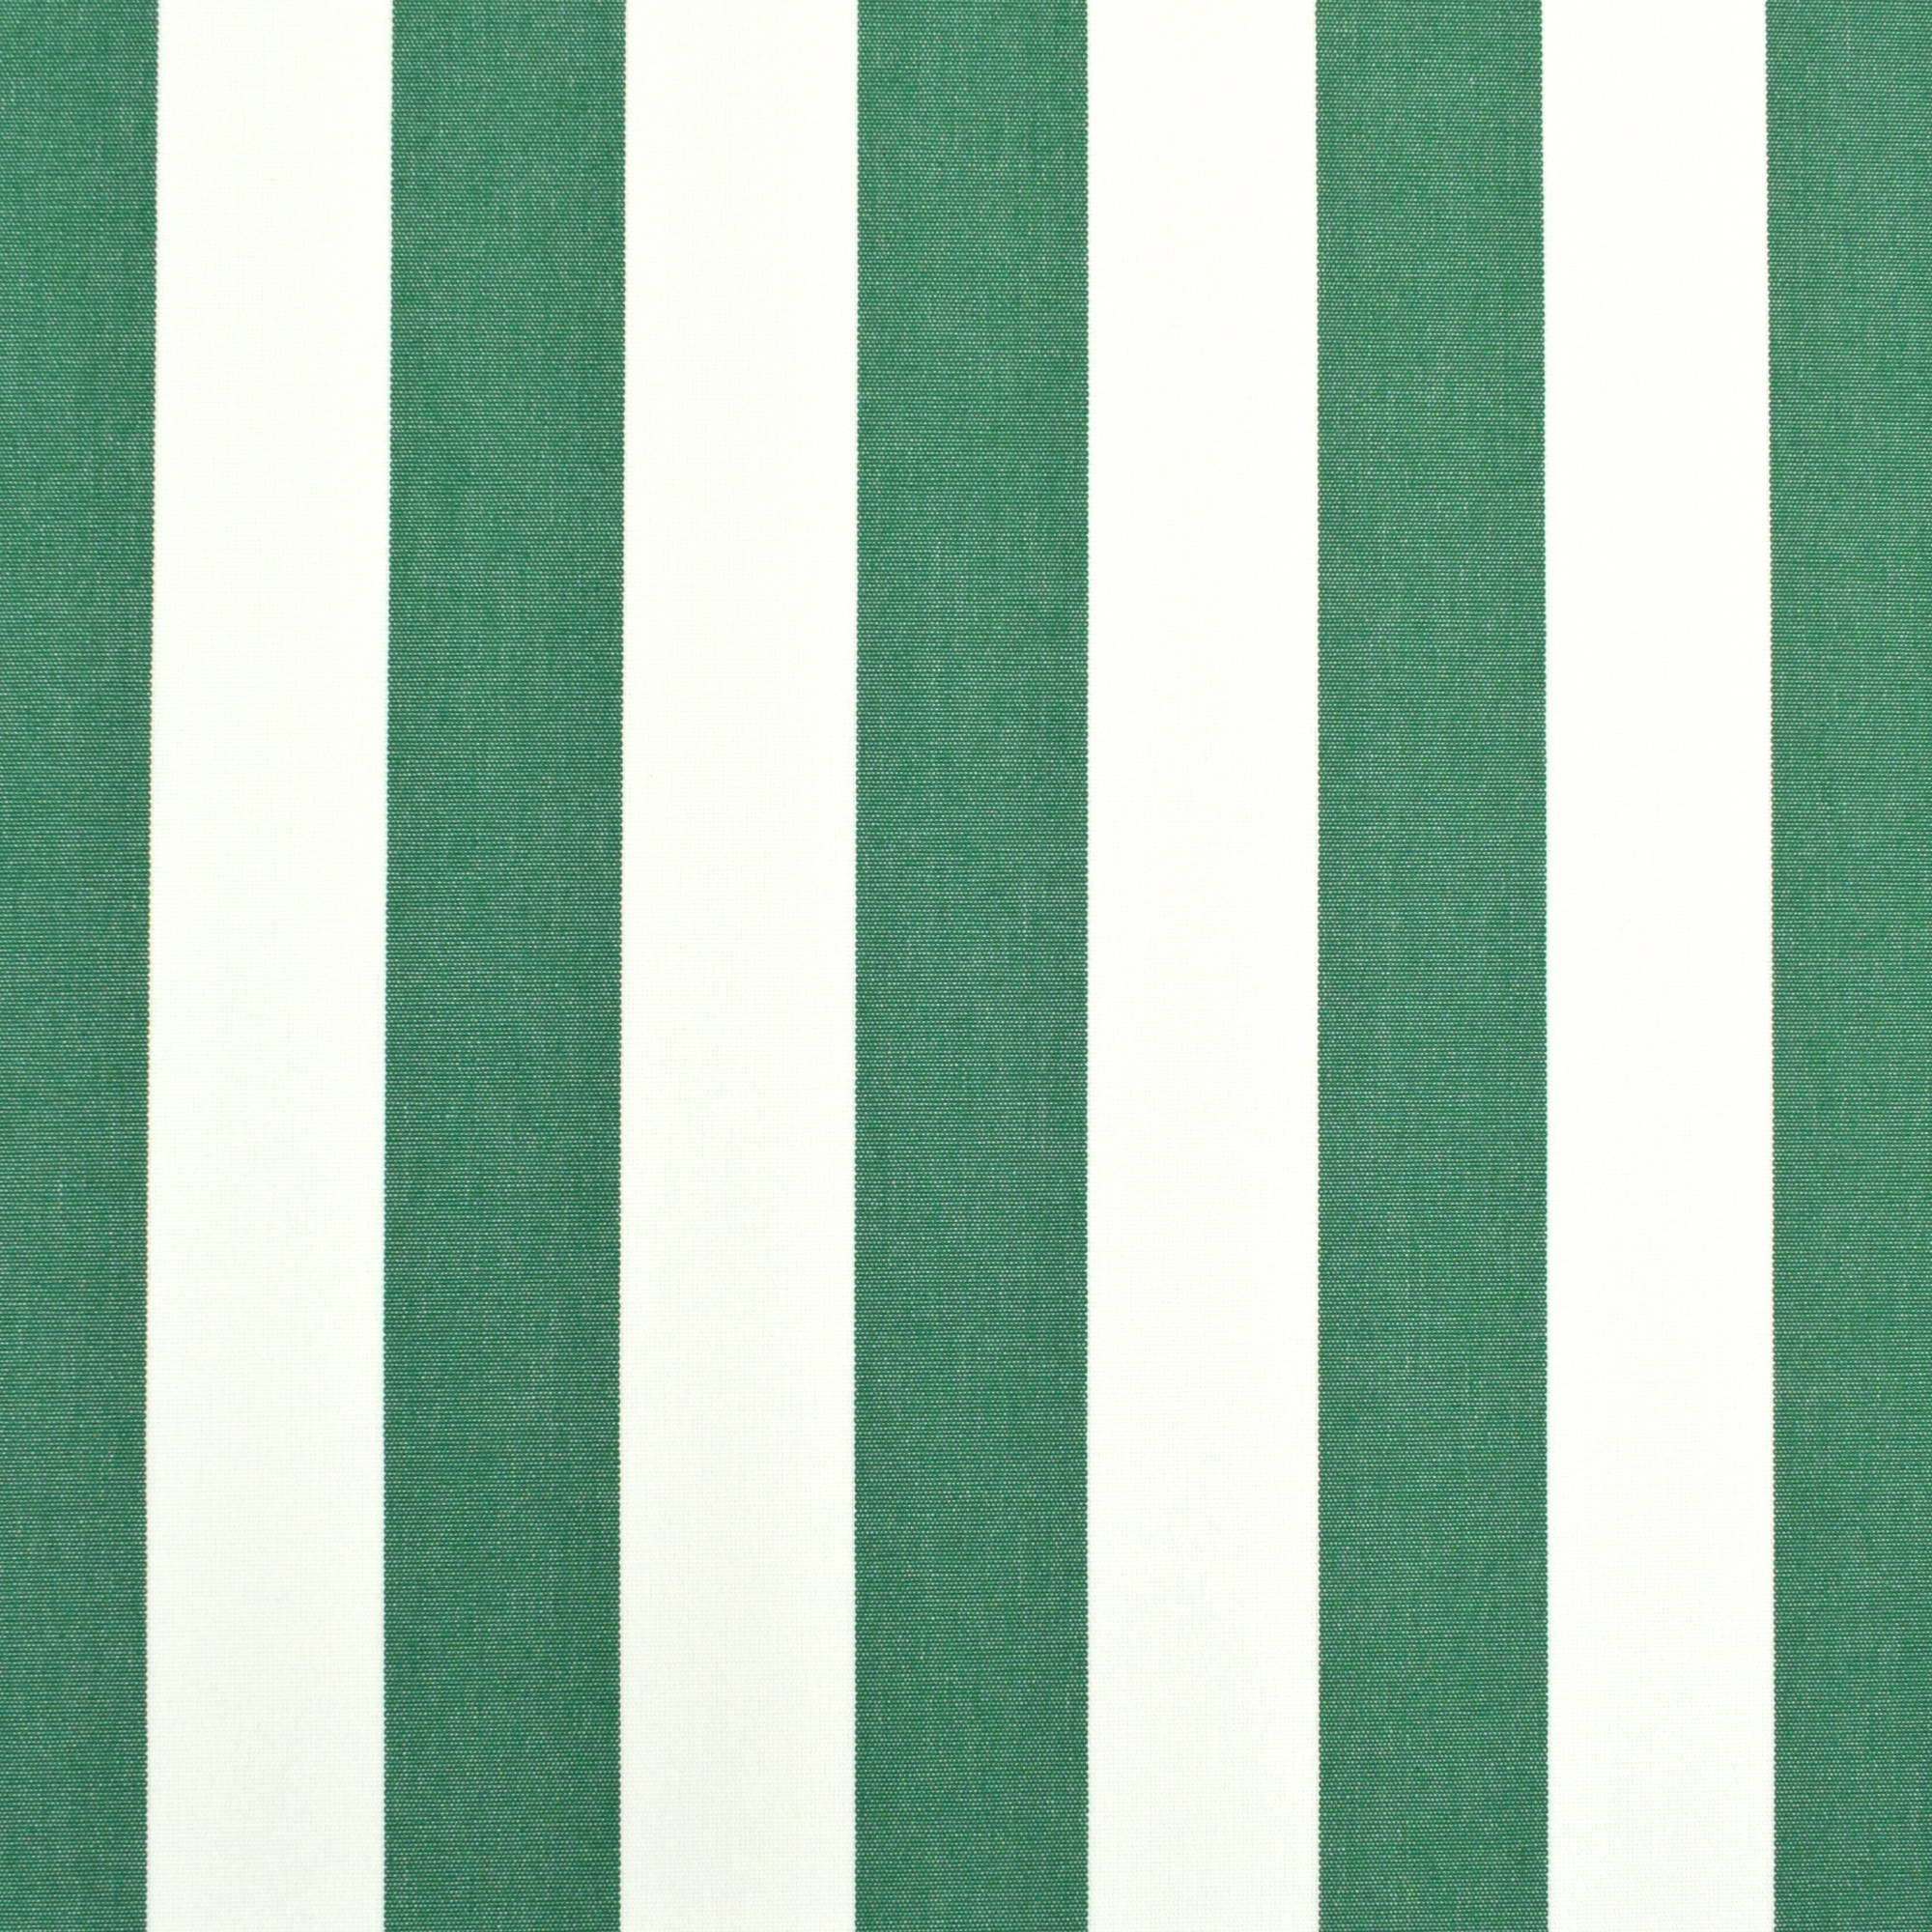 Awning / outdoor fabric, 160 cm, green / white | TEF-160-07 | grün